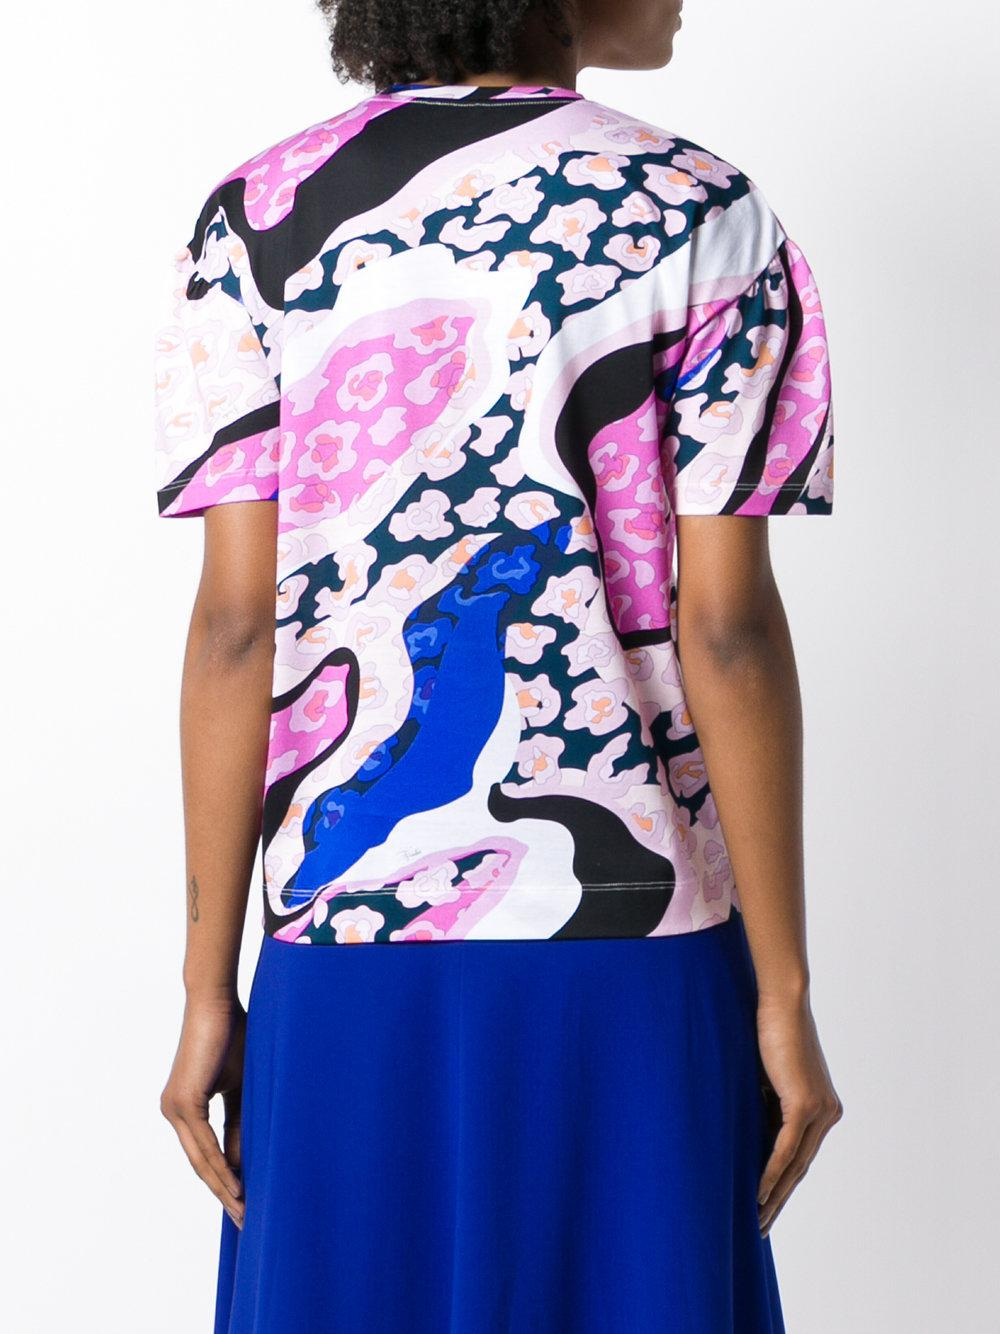 abstract logo print T-shirt - Pink & Purple Emilio Pucci Online Sale Online Outlet Footlocker Finishline Cheap Sale Pictures From China For Sale SpEj1iOQ